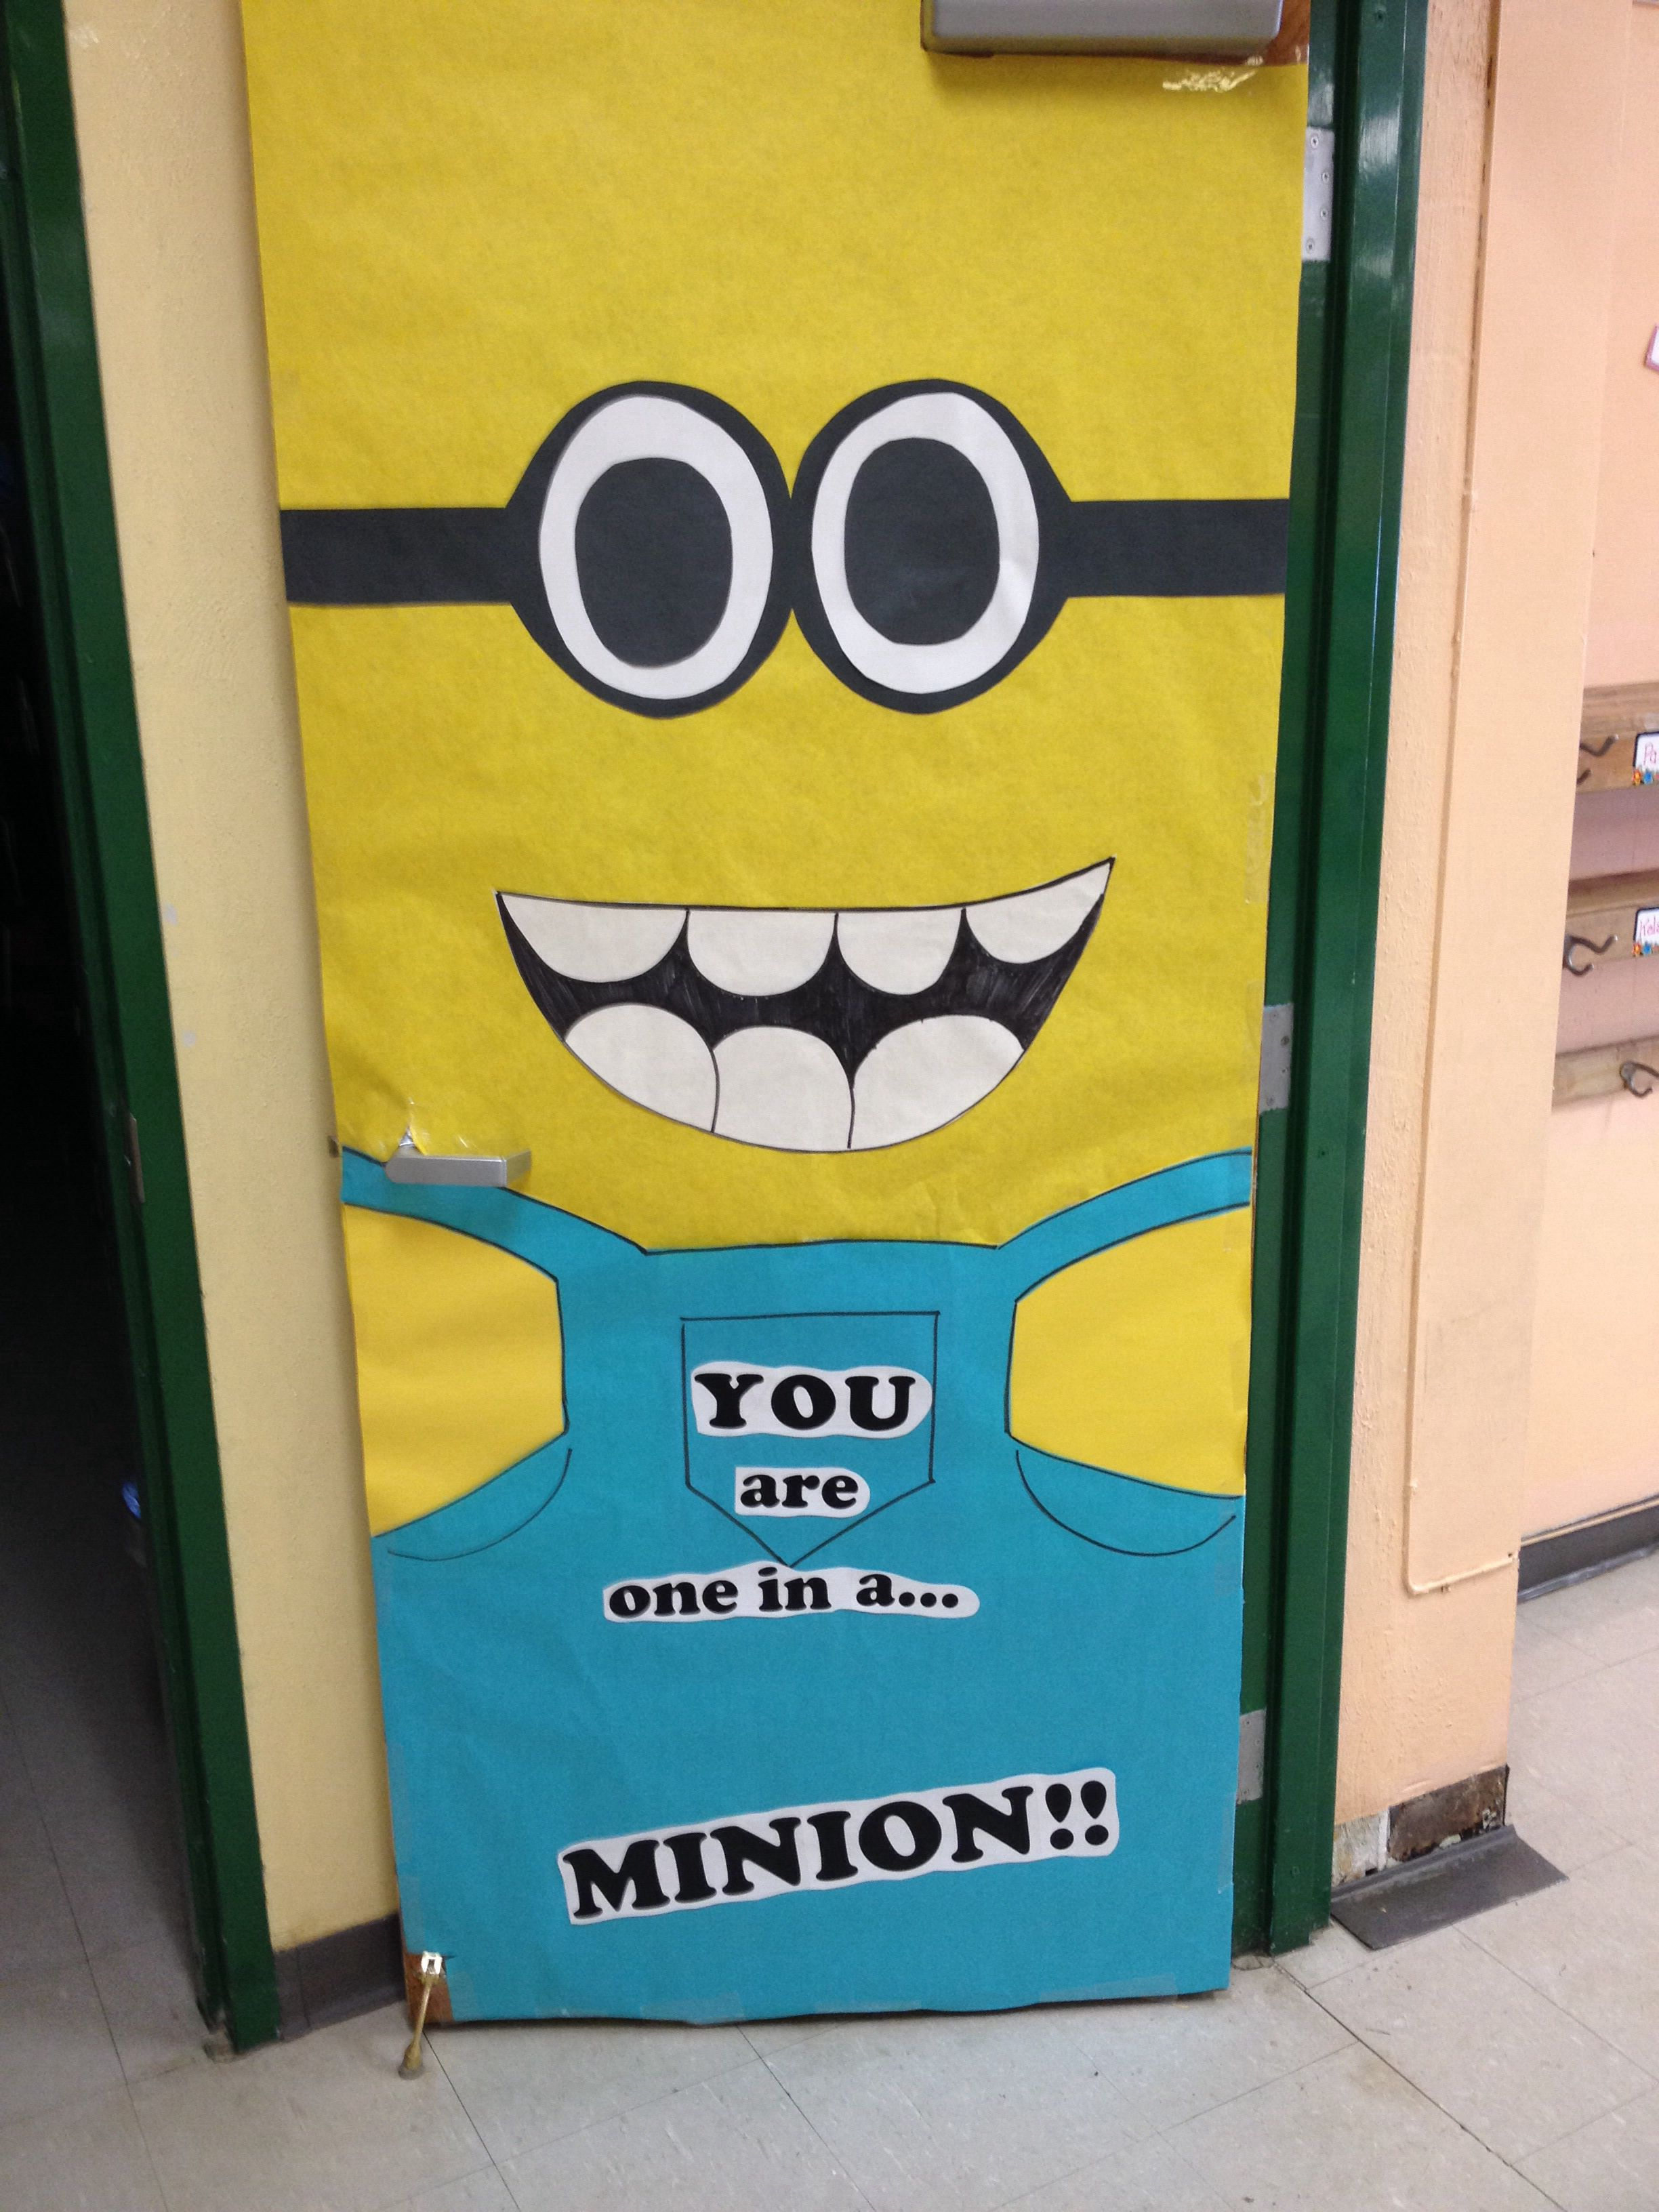 One in a Minion\